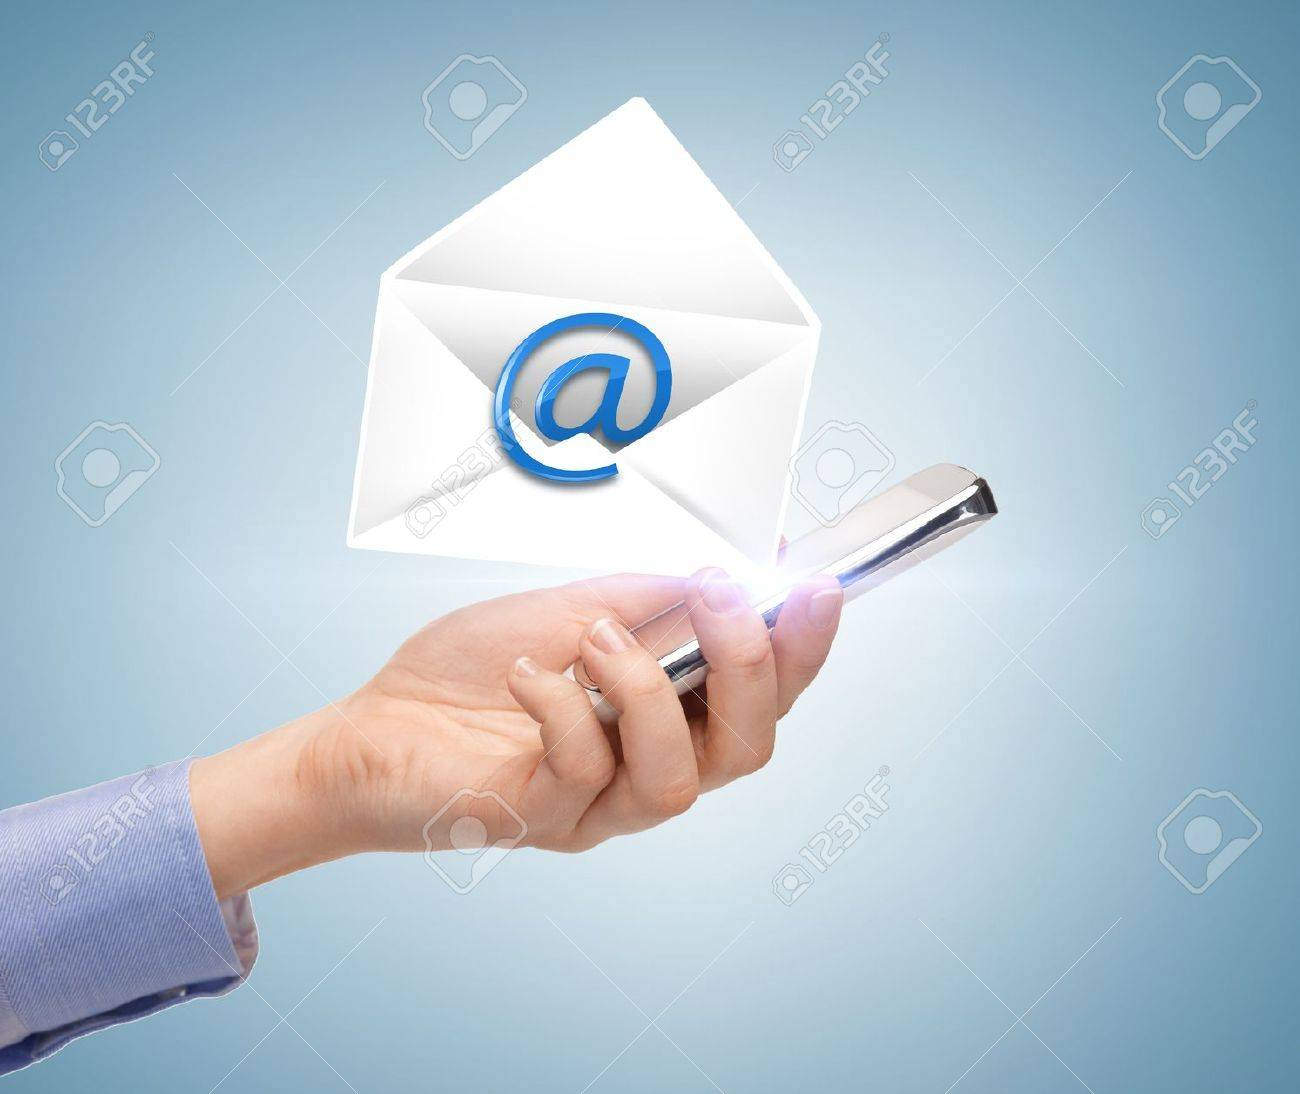 business, communication and future technology - woman holding smartphone with email icon Stock Photo - 21219117